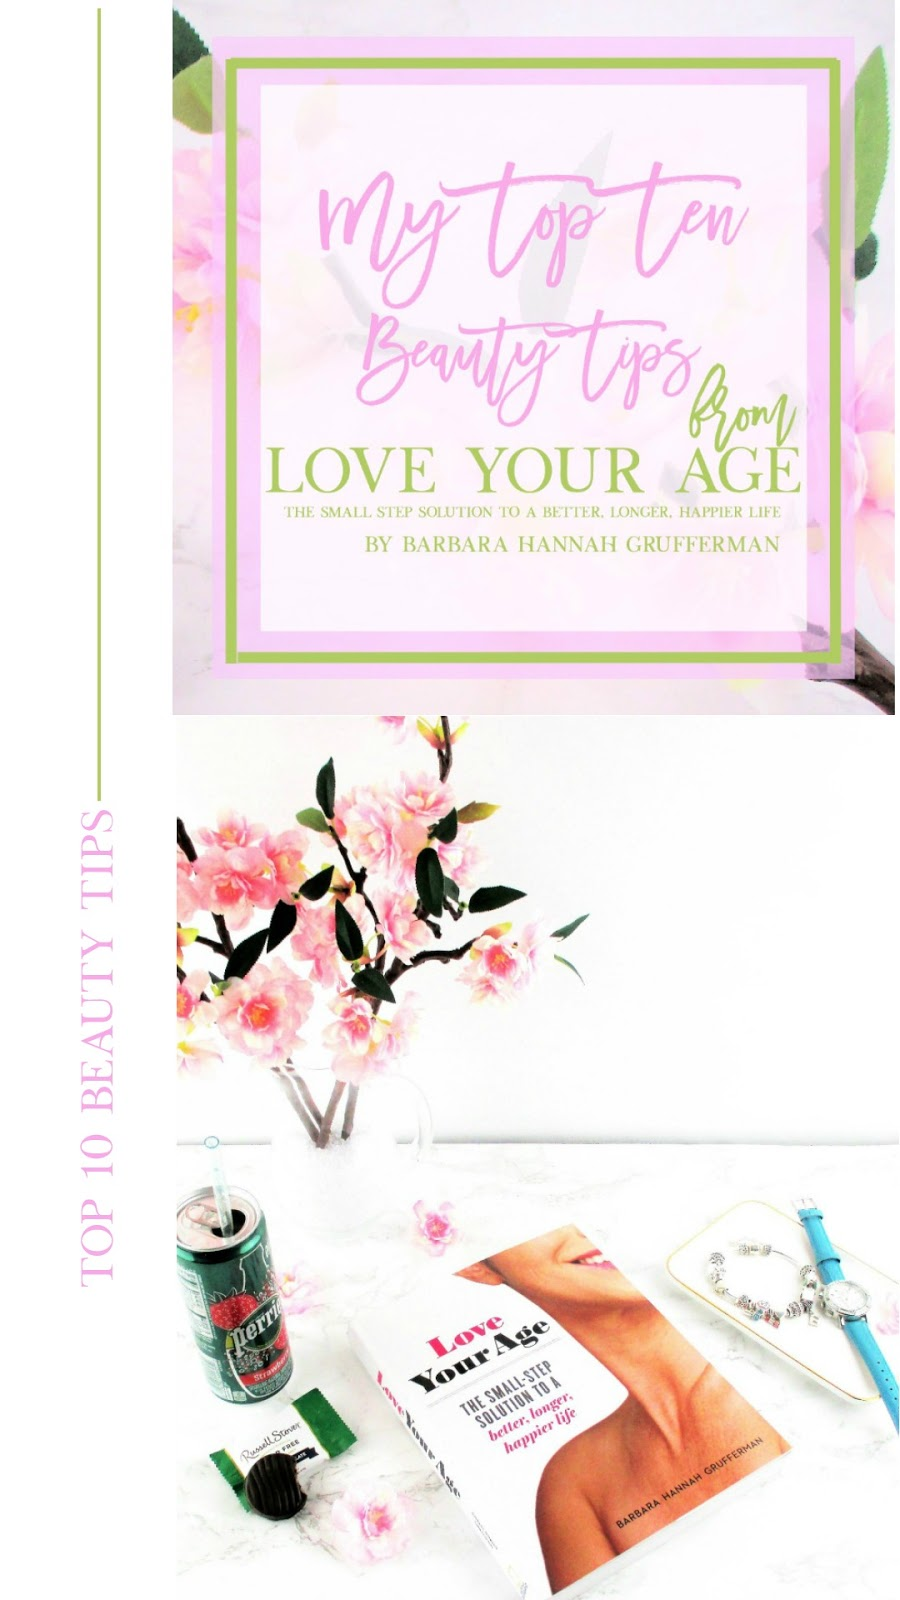 My Top Ten Favorite Beauty Tips from Love Your Age The Small Step Solution to a Better, Longer, Happier Life